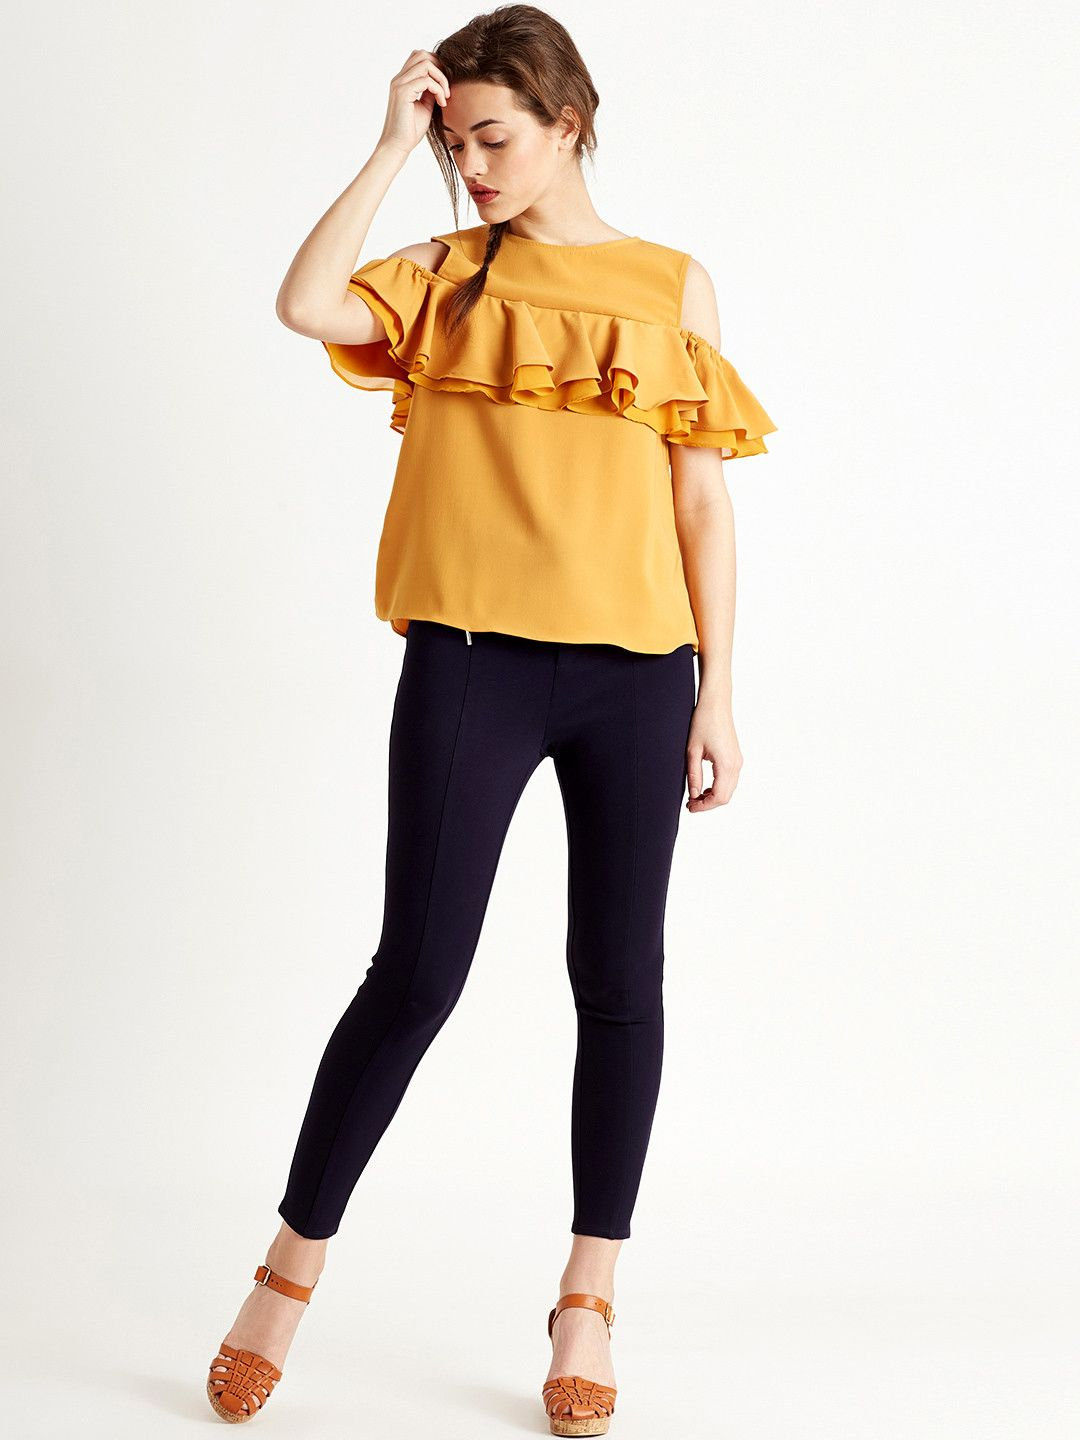 60ee6dda06a Buy COVER STORY Mustard Yellow Cold-Shoulder Top with Ruffles online in  India at best price.Mustard yellow top with ruffles, has a round neck, ...